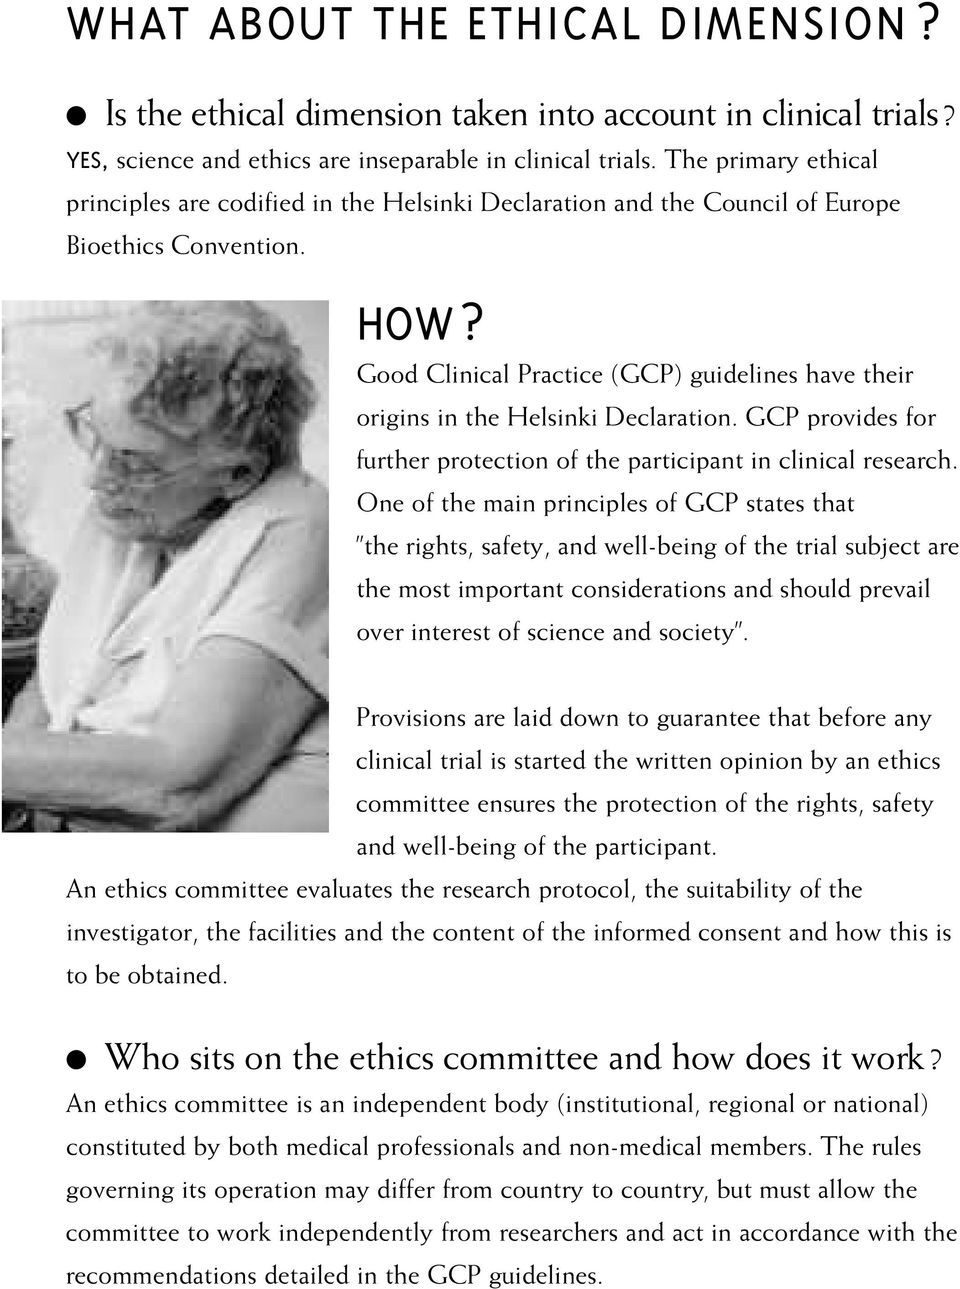 Good Clinical Practice (GCP) guidelines have their origins in the Helsinki Declaration. GCP provides for further protection of the participant in clinical research.